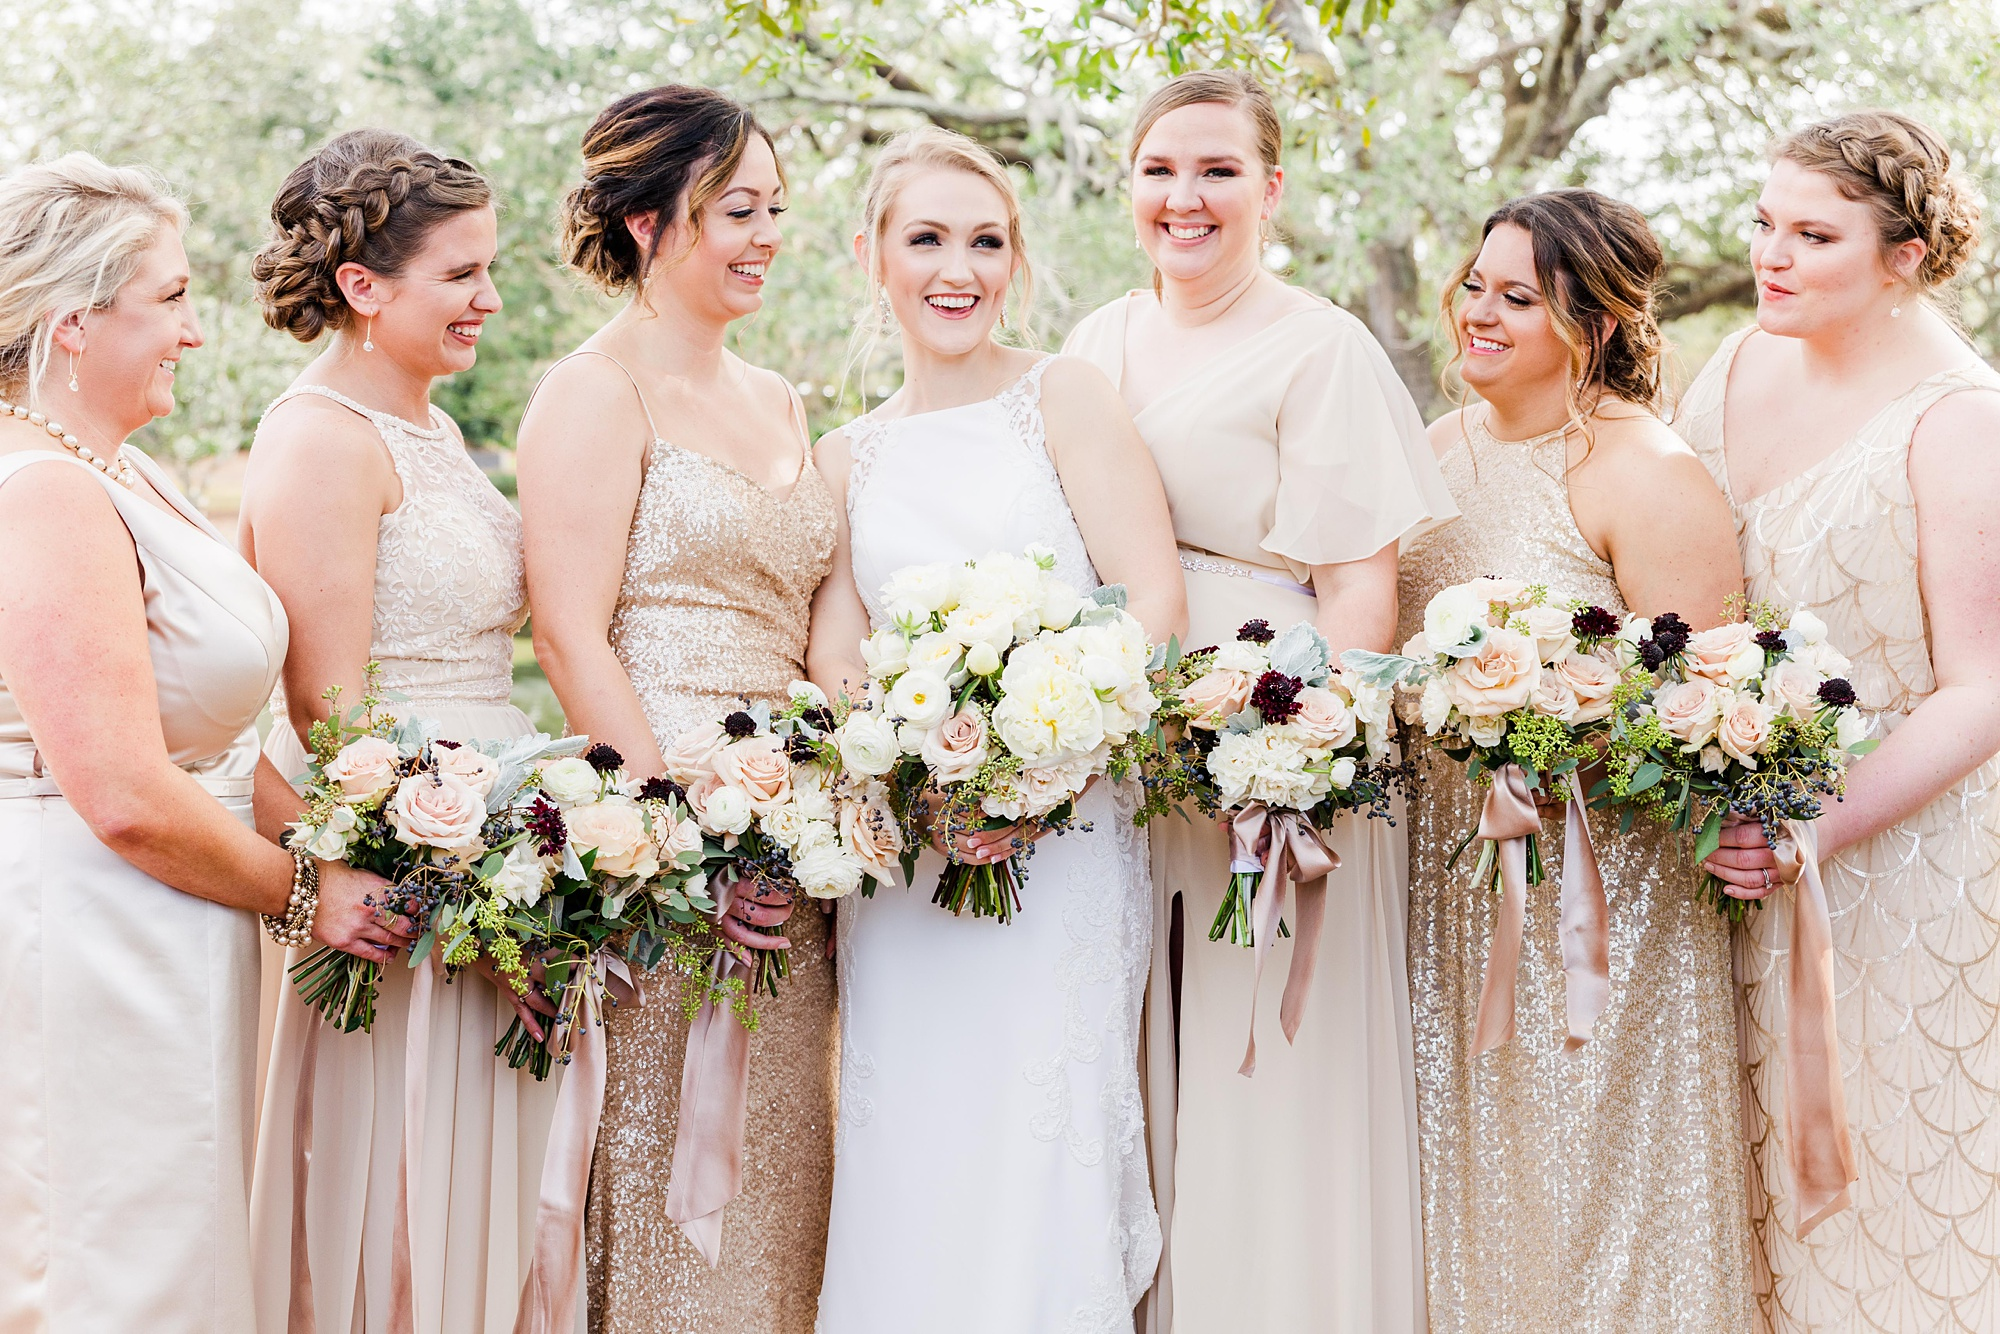 bride poses with bridesmaids in mismatched champagne gowns